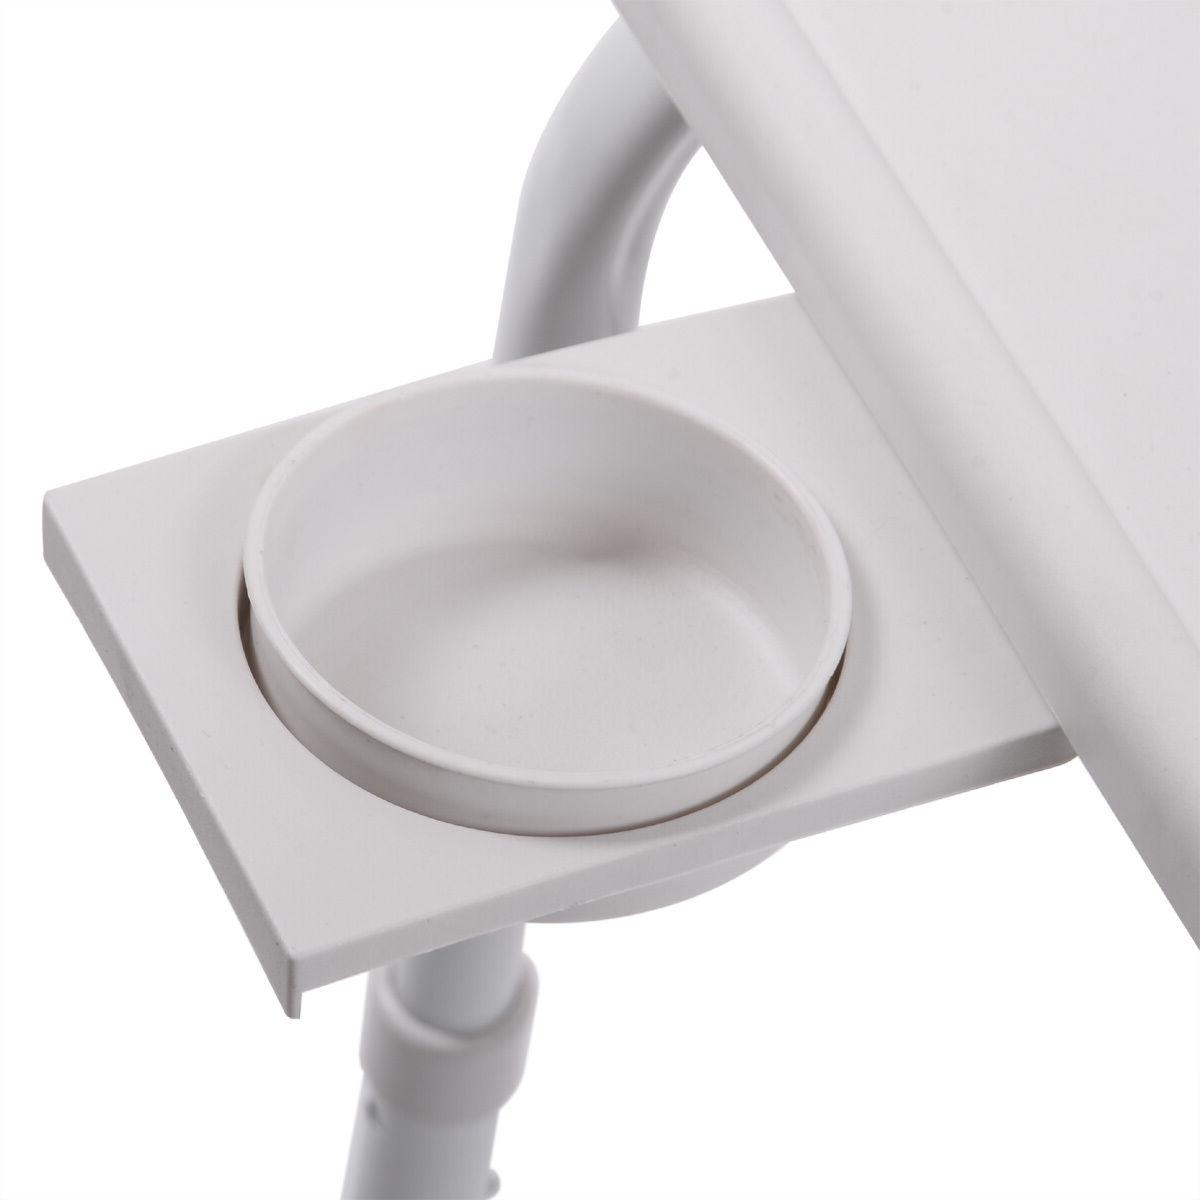 2 Smart Table Adjustable W/Cup